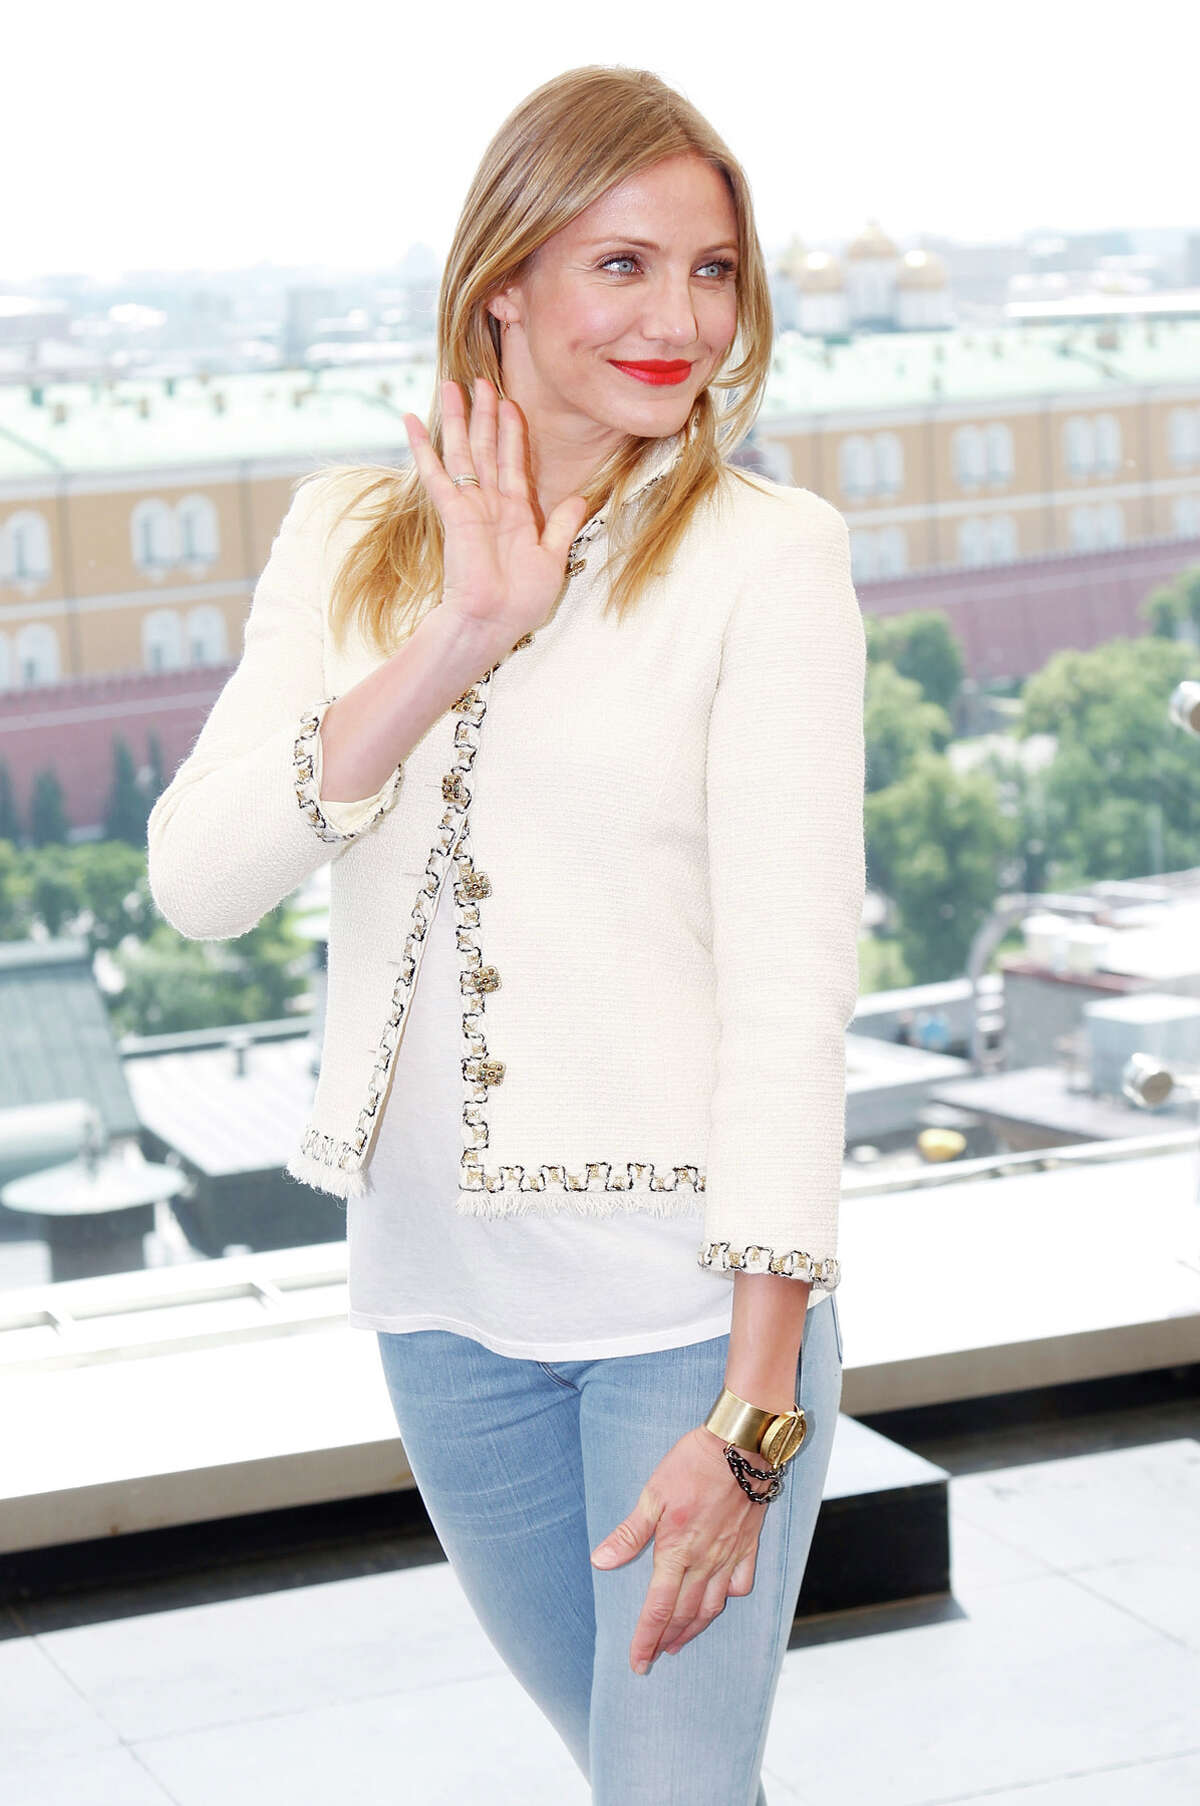 """Cameron Diaz: Avaline Wine Actress Cameron Diaz and entrepreneur Katherine Power started a line of """"clean"""" wines made with organic grapes. In 2020, the introduced a sparkling wine. Find out more."""